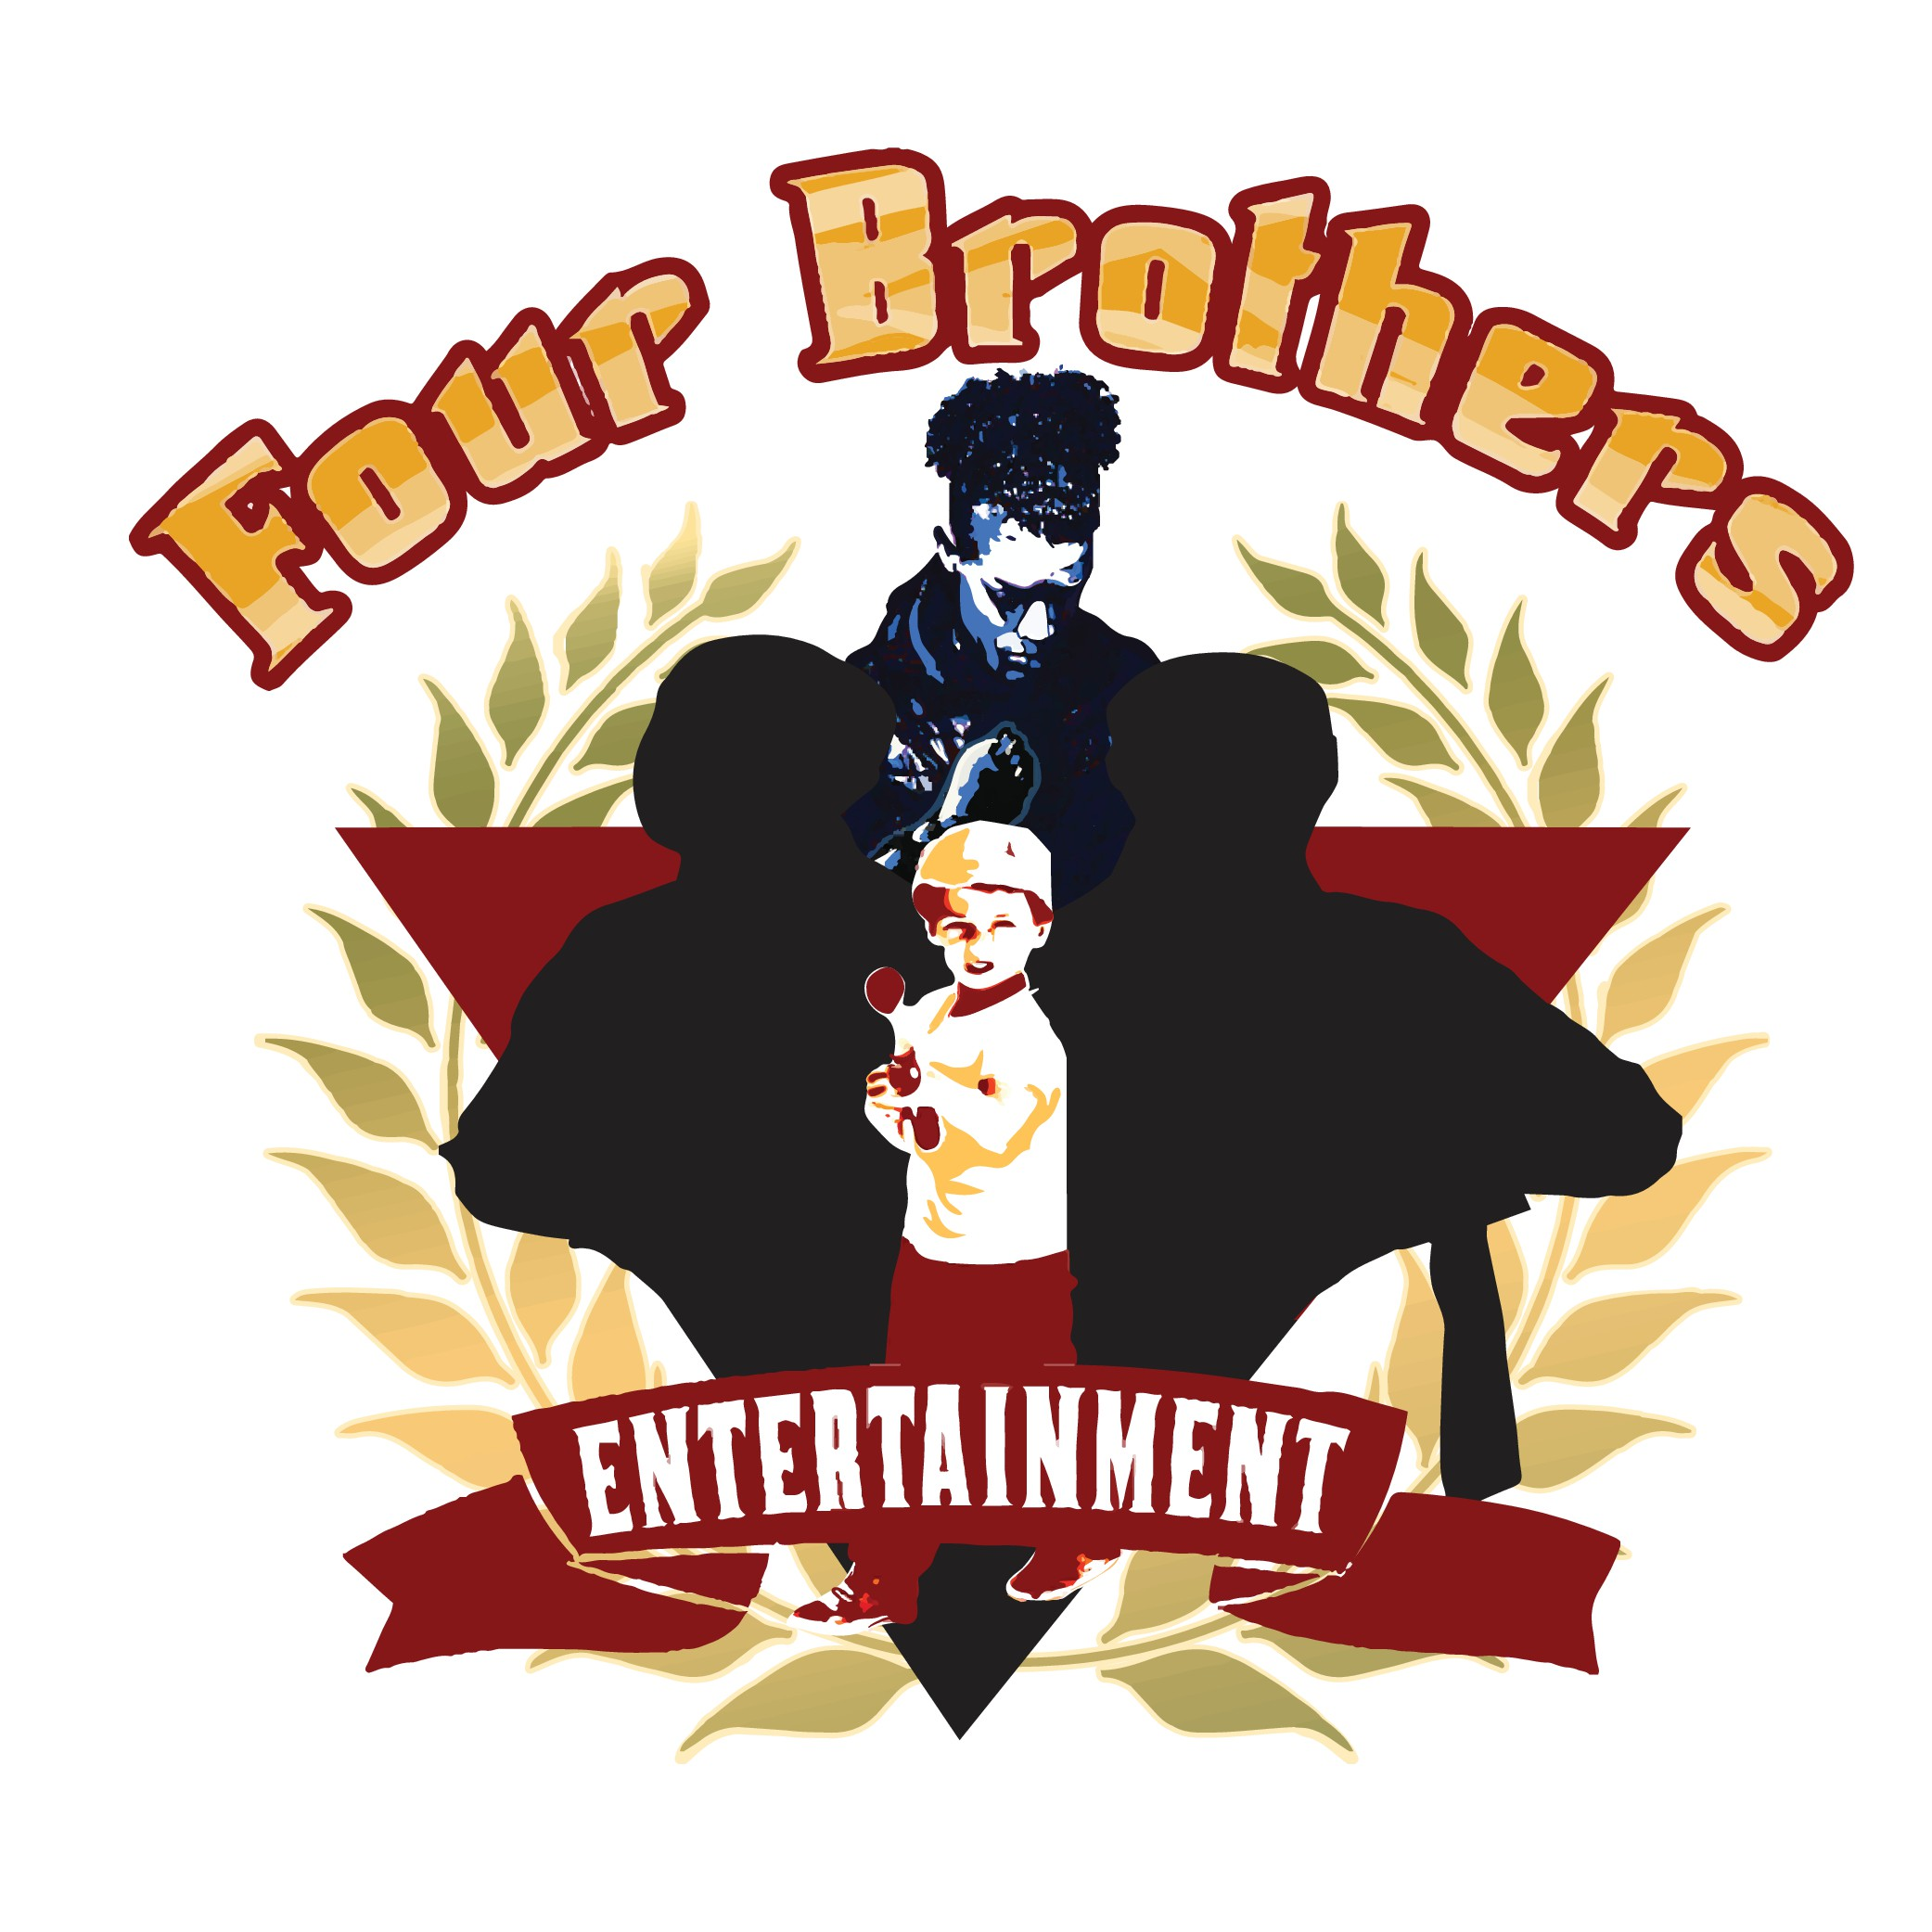 Enhance the current logo for Four Brothers Entertainment